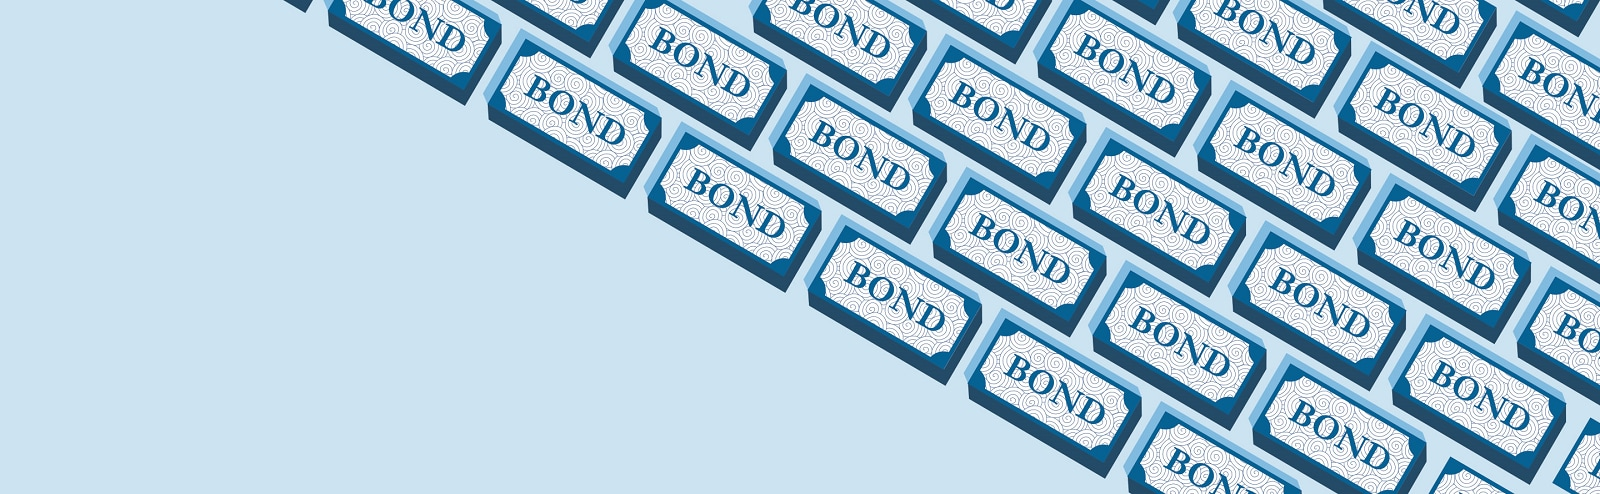 sg-bond-articles-masthead